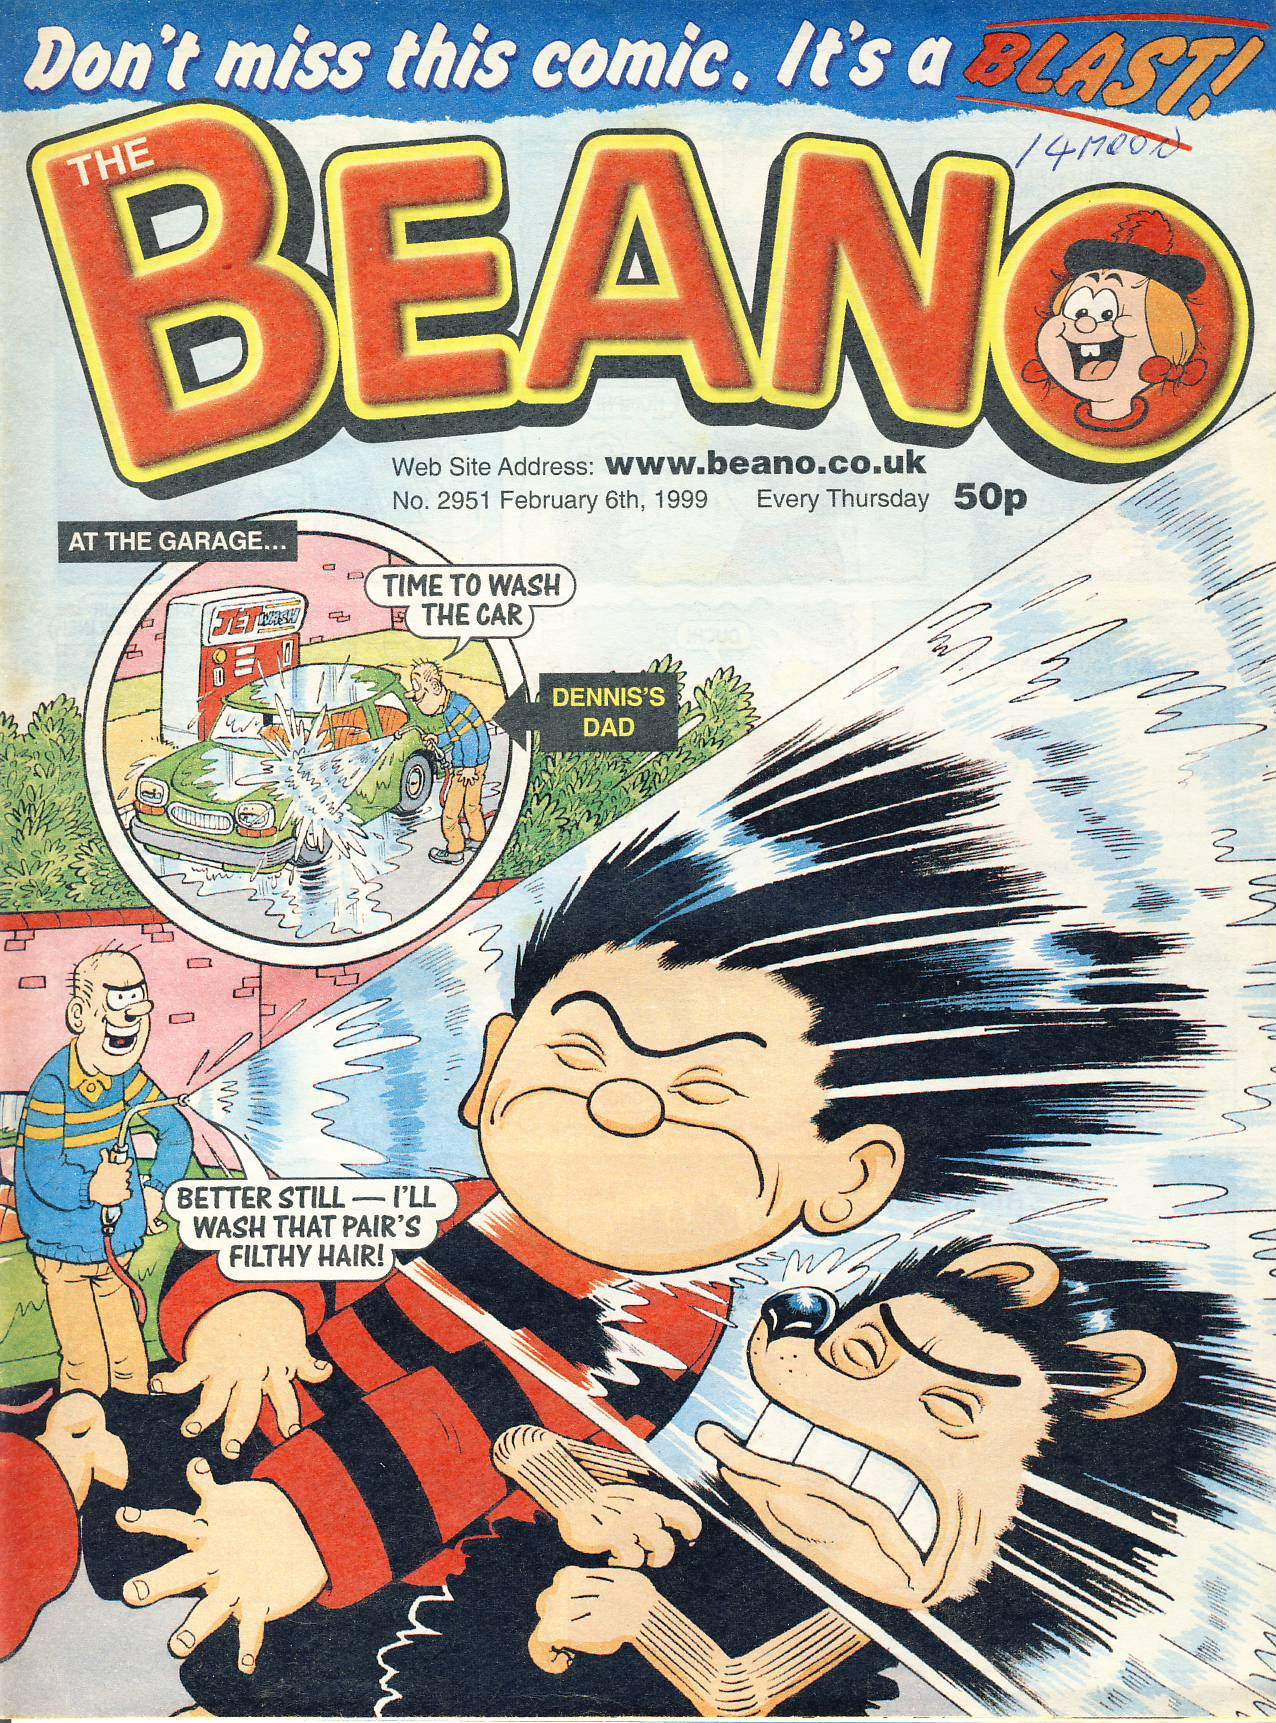 1999 February 6th BEANO vintage comic Good Gift Christmas Present Birthday Anniversary ref319a pre-owned item in good read condition.